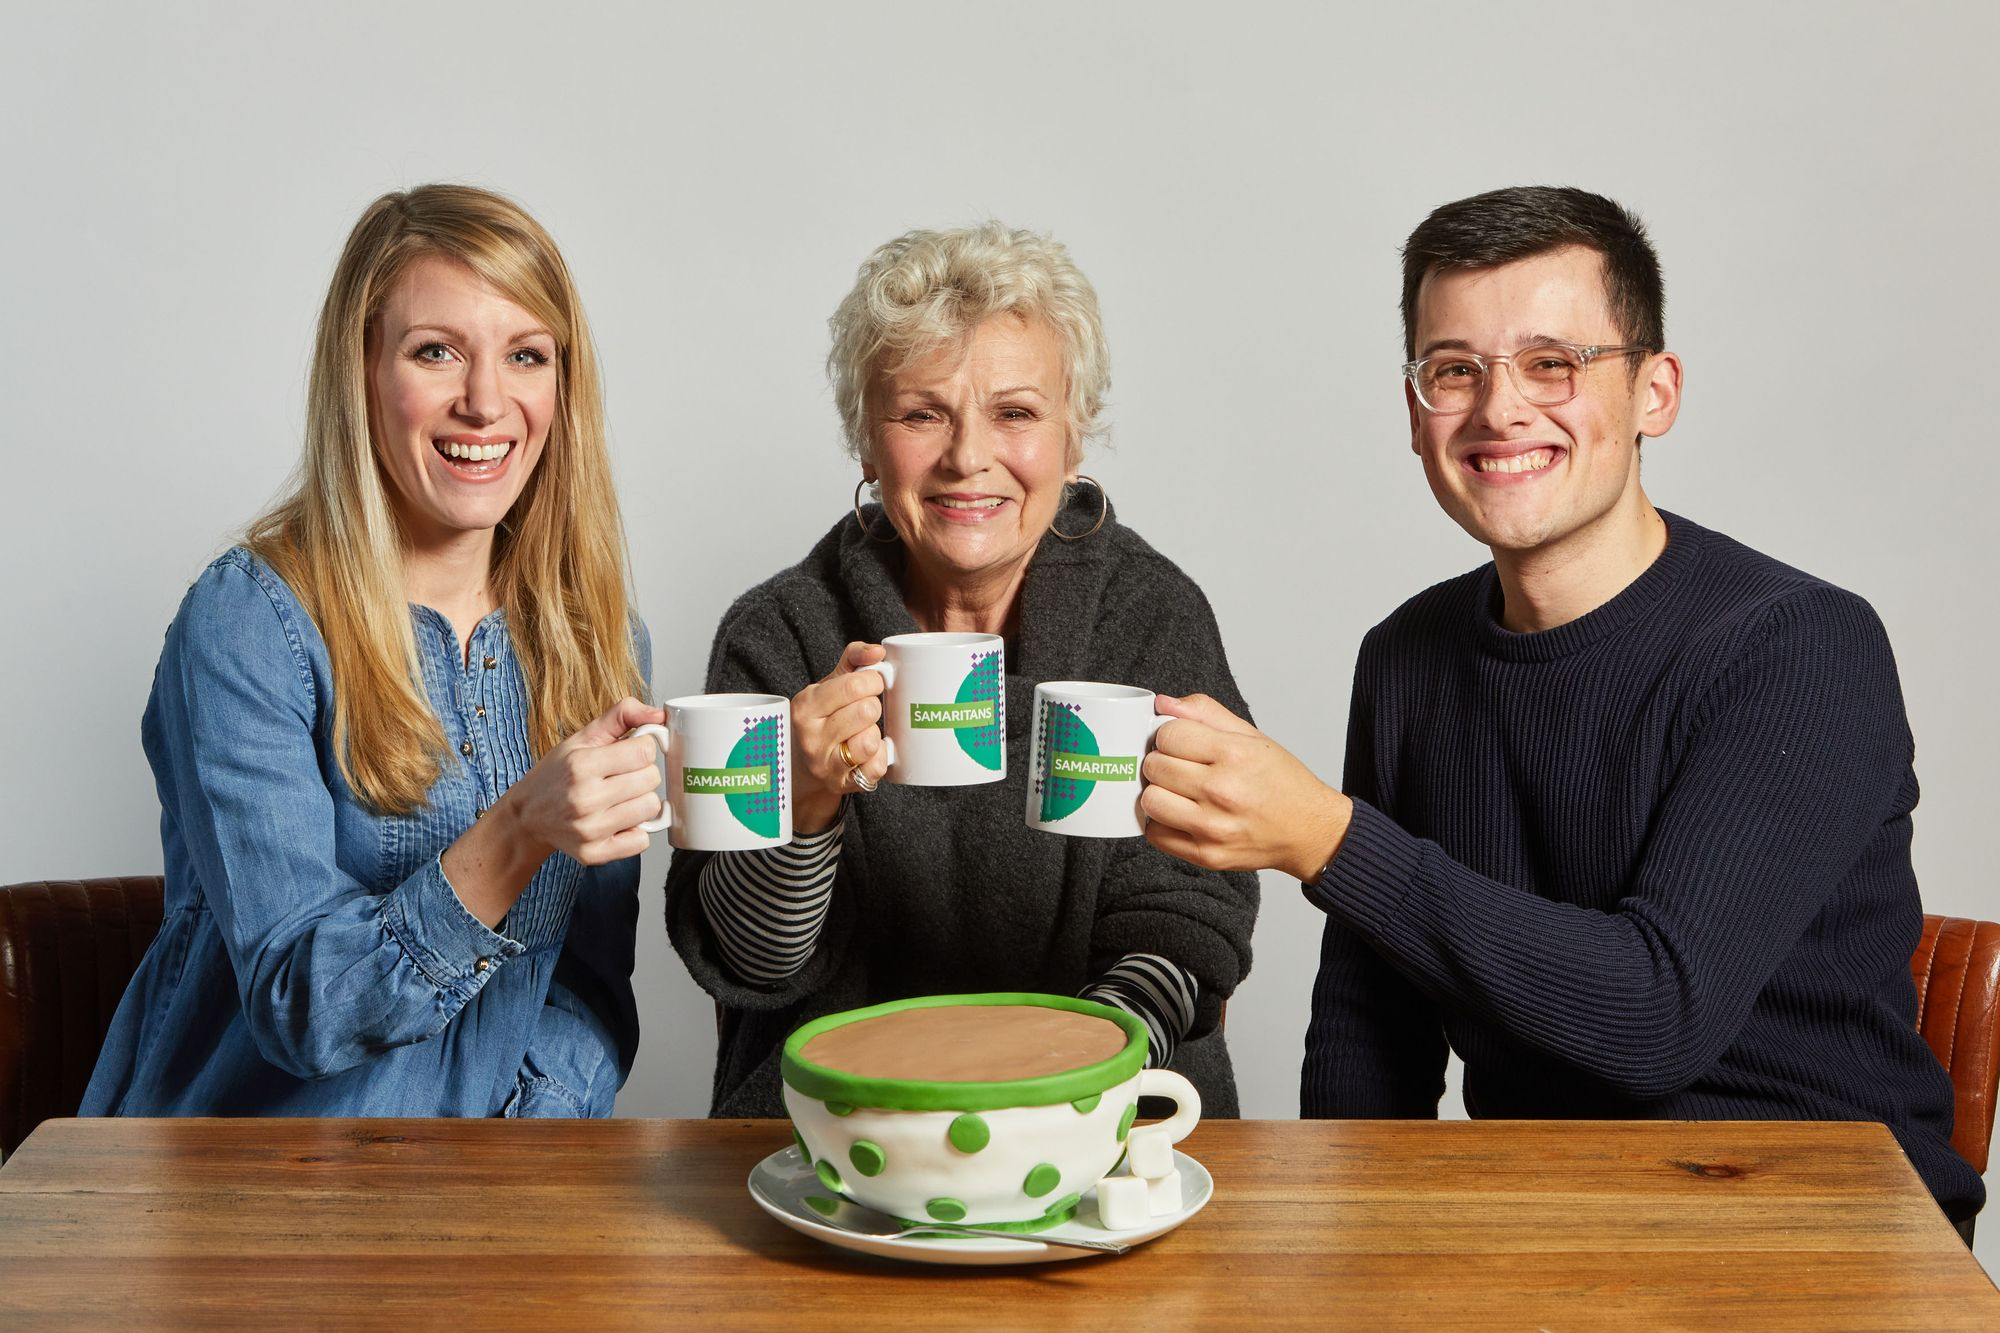 Dame Julie, Rachel and Michael share a cup of tea and pose with a teacup-shaped cake